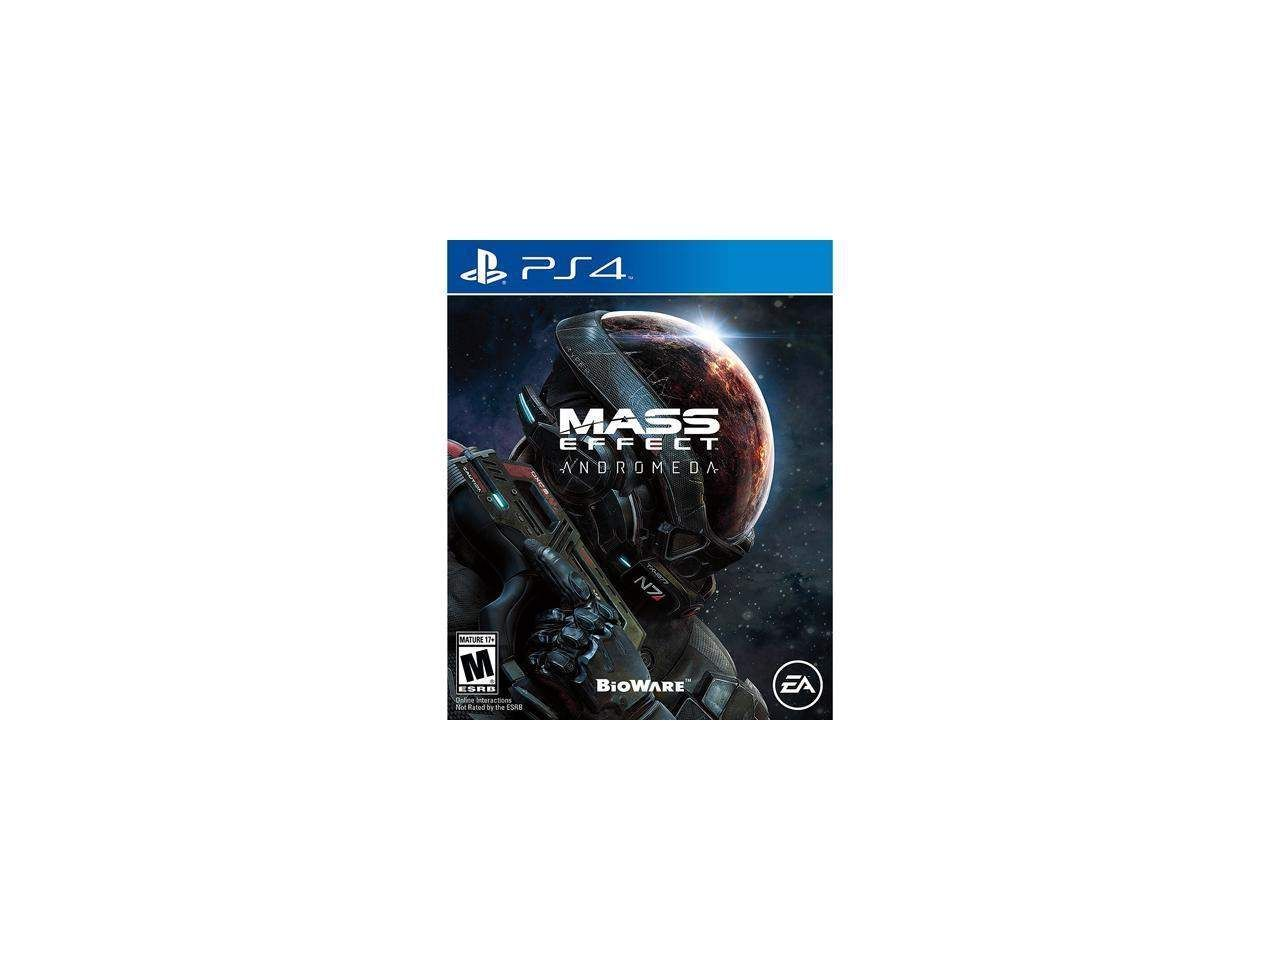 mass effect andromeda (ps4 or xbox one) h&r block tax software